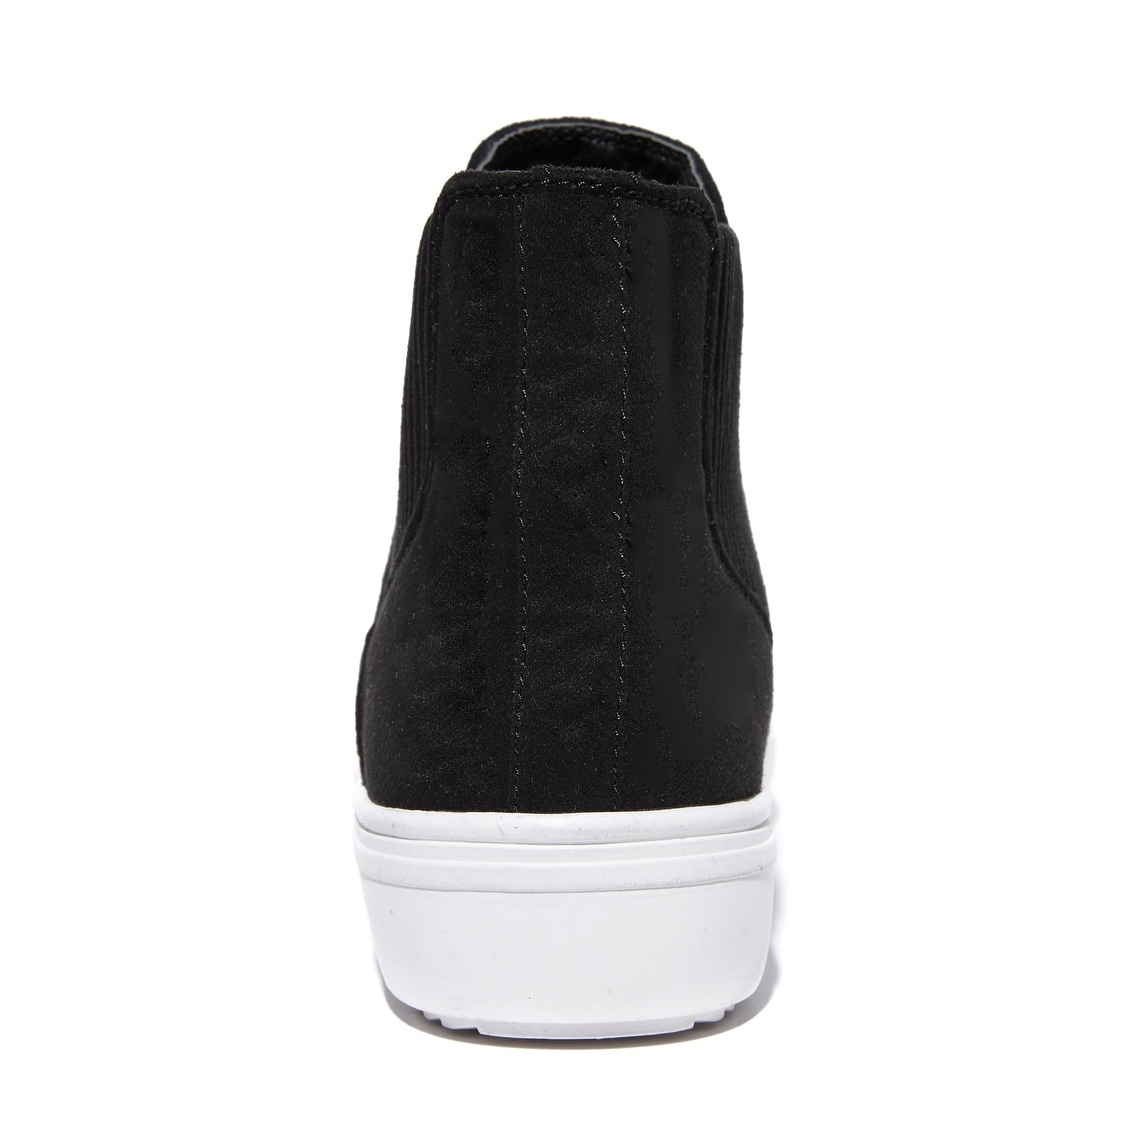 c4fdb66bea6 Shop STEVEN by Steve Madden Womens coal Low Top Pull On Fashion ...